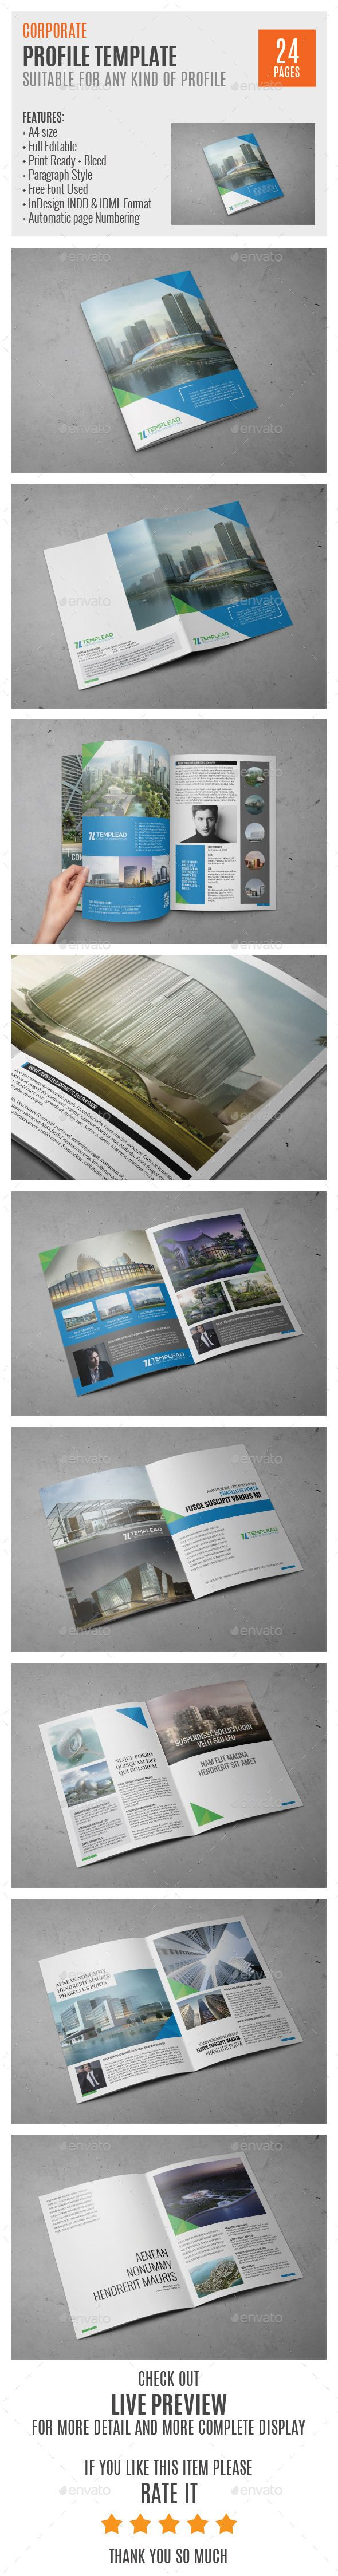 Corporate Profile A4 InDesign Template | Download: http://graphicriver.net/item/corporate-profile-a4-indesign-template-0032/10105789?ref=ksioks